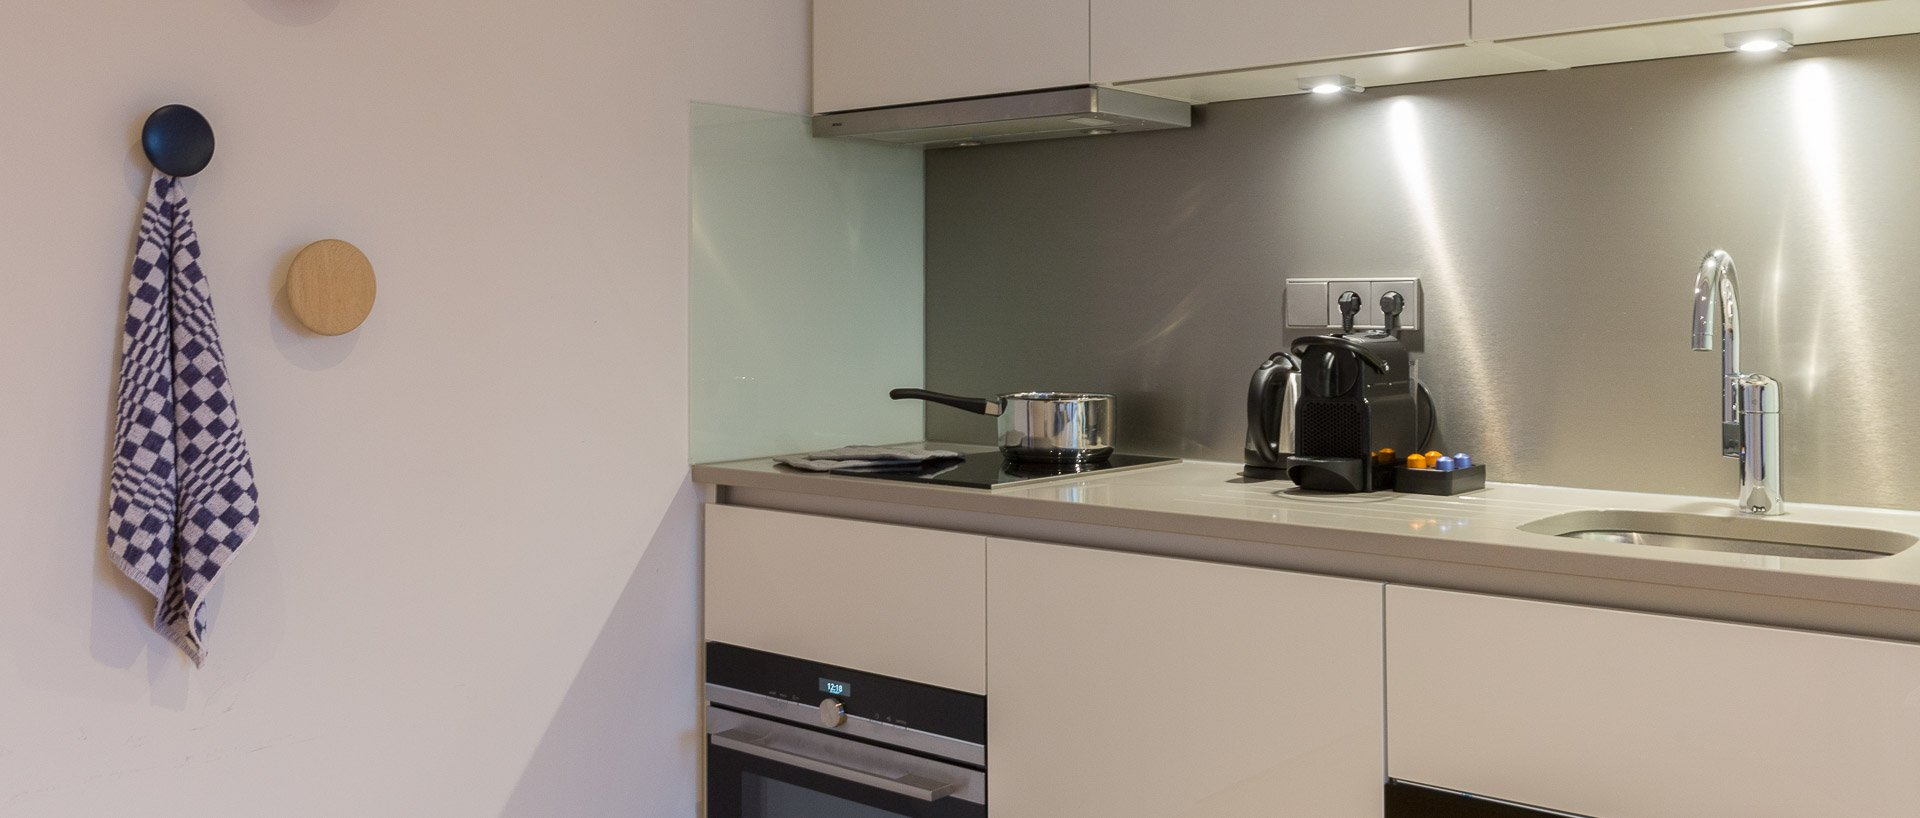 Kitchenette at PREMIER SUITES PLUS Rotterdam